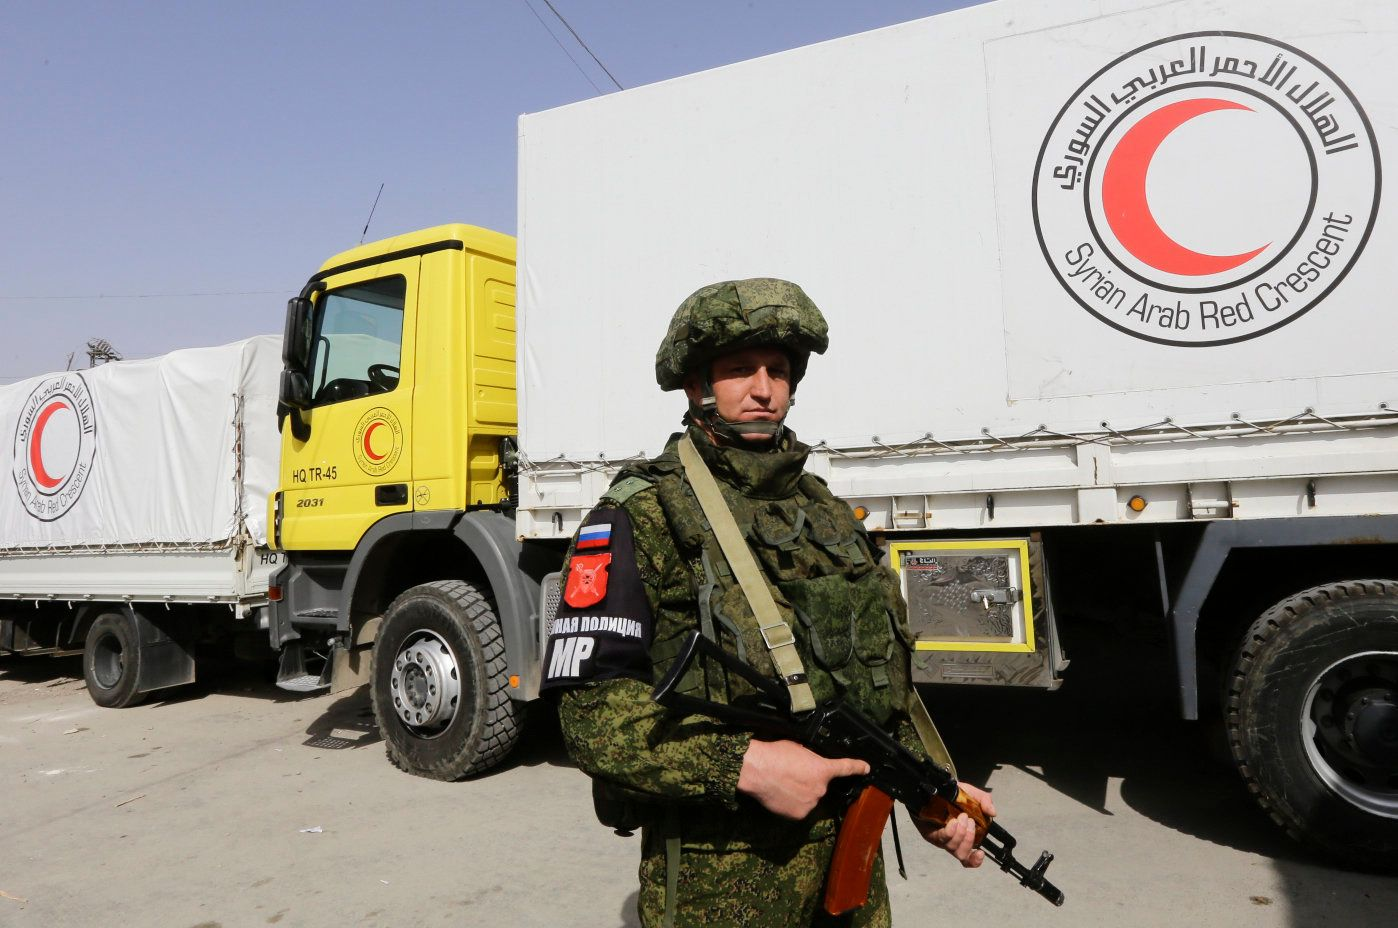 A Russian solider stands guards as Syrian Arab Red Crescent vehicles carrying aid wait at the al-Wafideen checkpoint on the outskirts of Damascus neighbouring the rebel-held Eastern Ghouta region before delivering aid to the rebel-held enclave on March 5, 2018. / AFP PHOTO / Louai Beshara        (Photo credit should read LOUAI BESHARA/AFP/Getty Images)